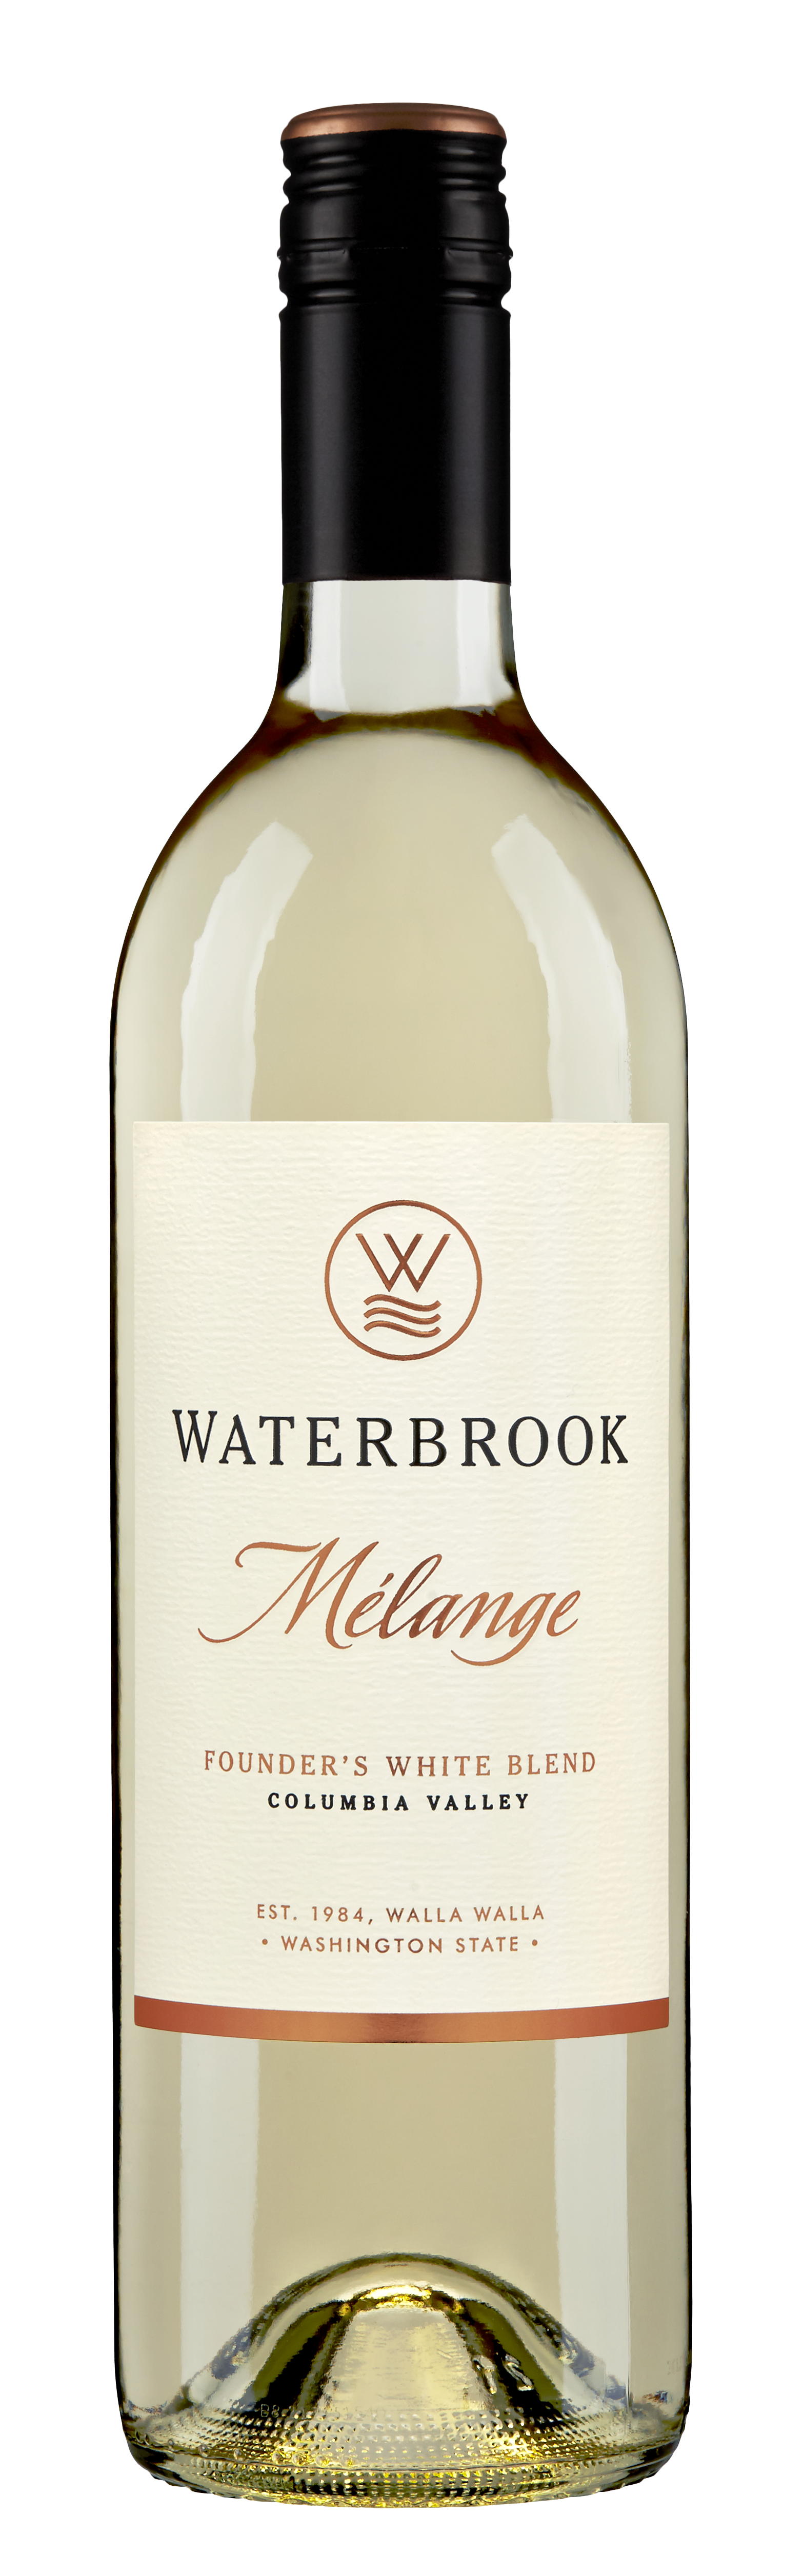 Waterbrook Mélange Founder\'s White Blend Image